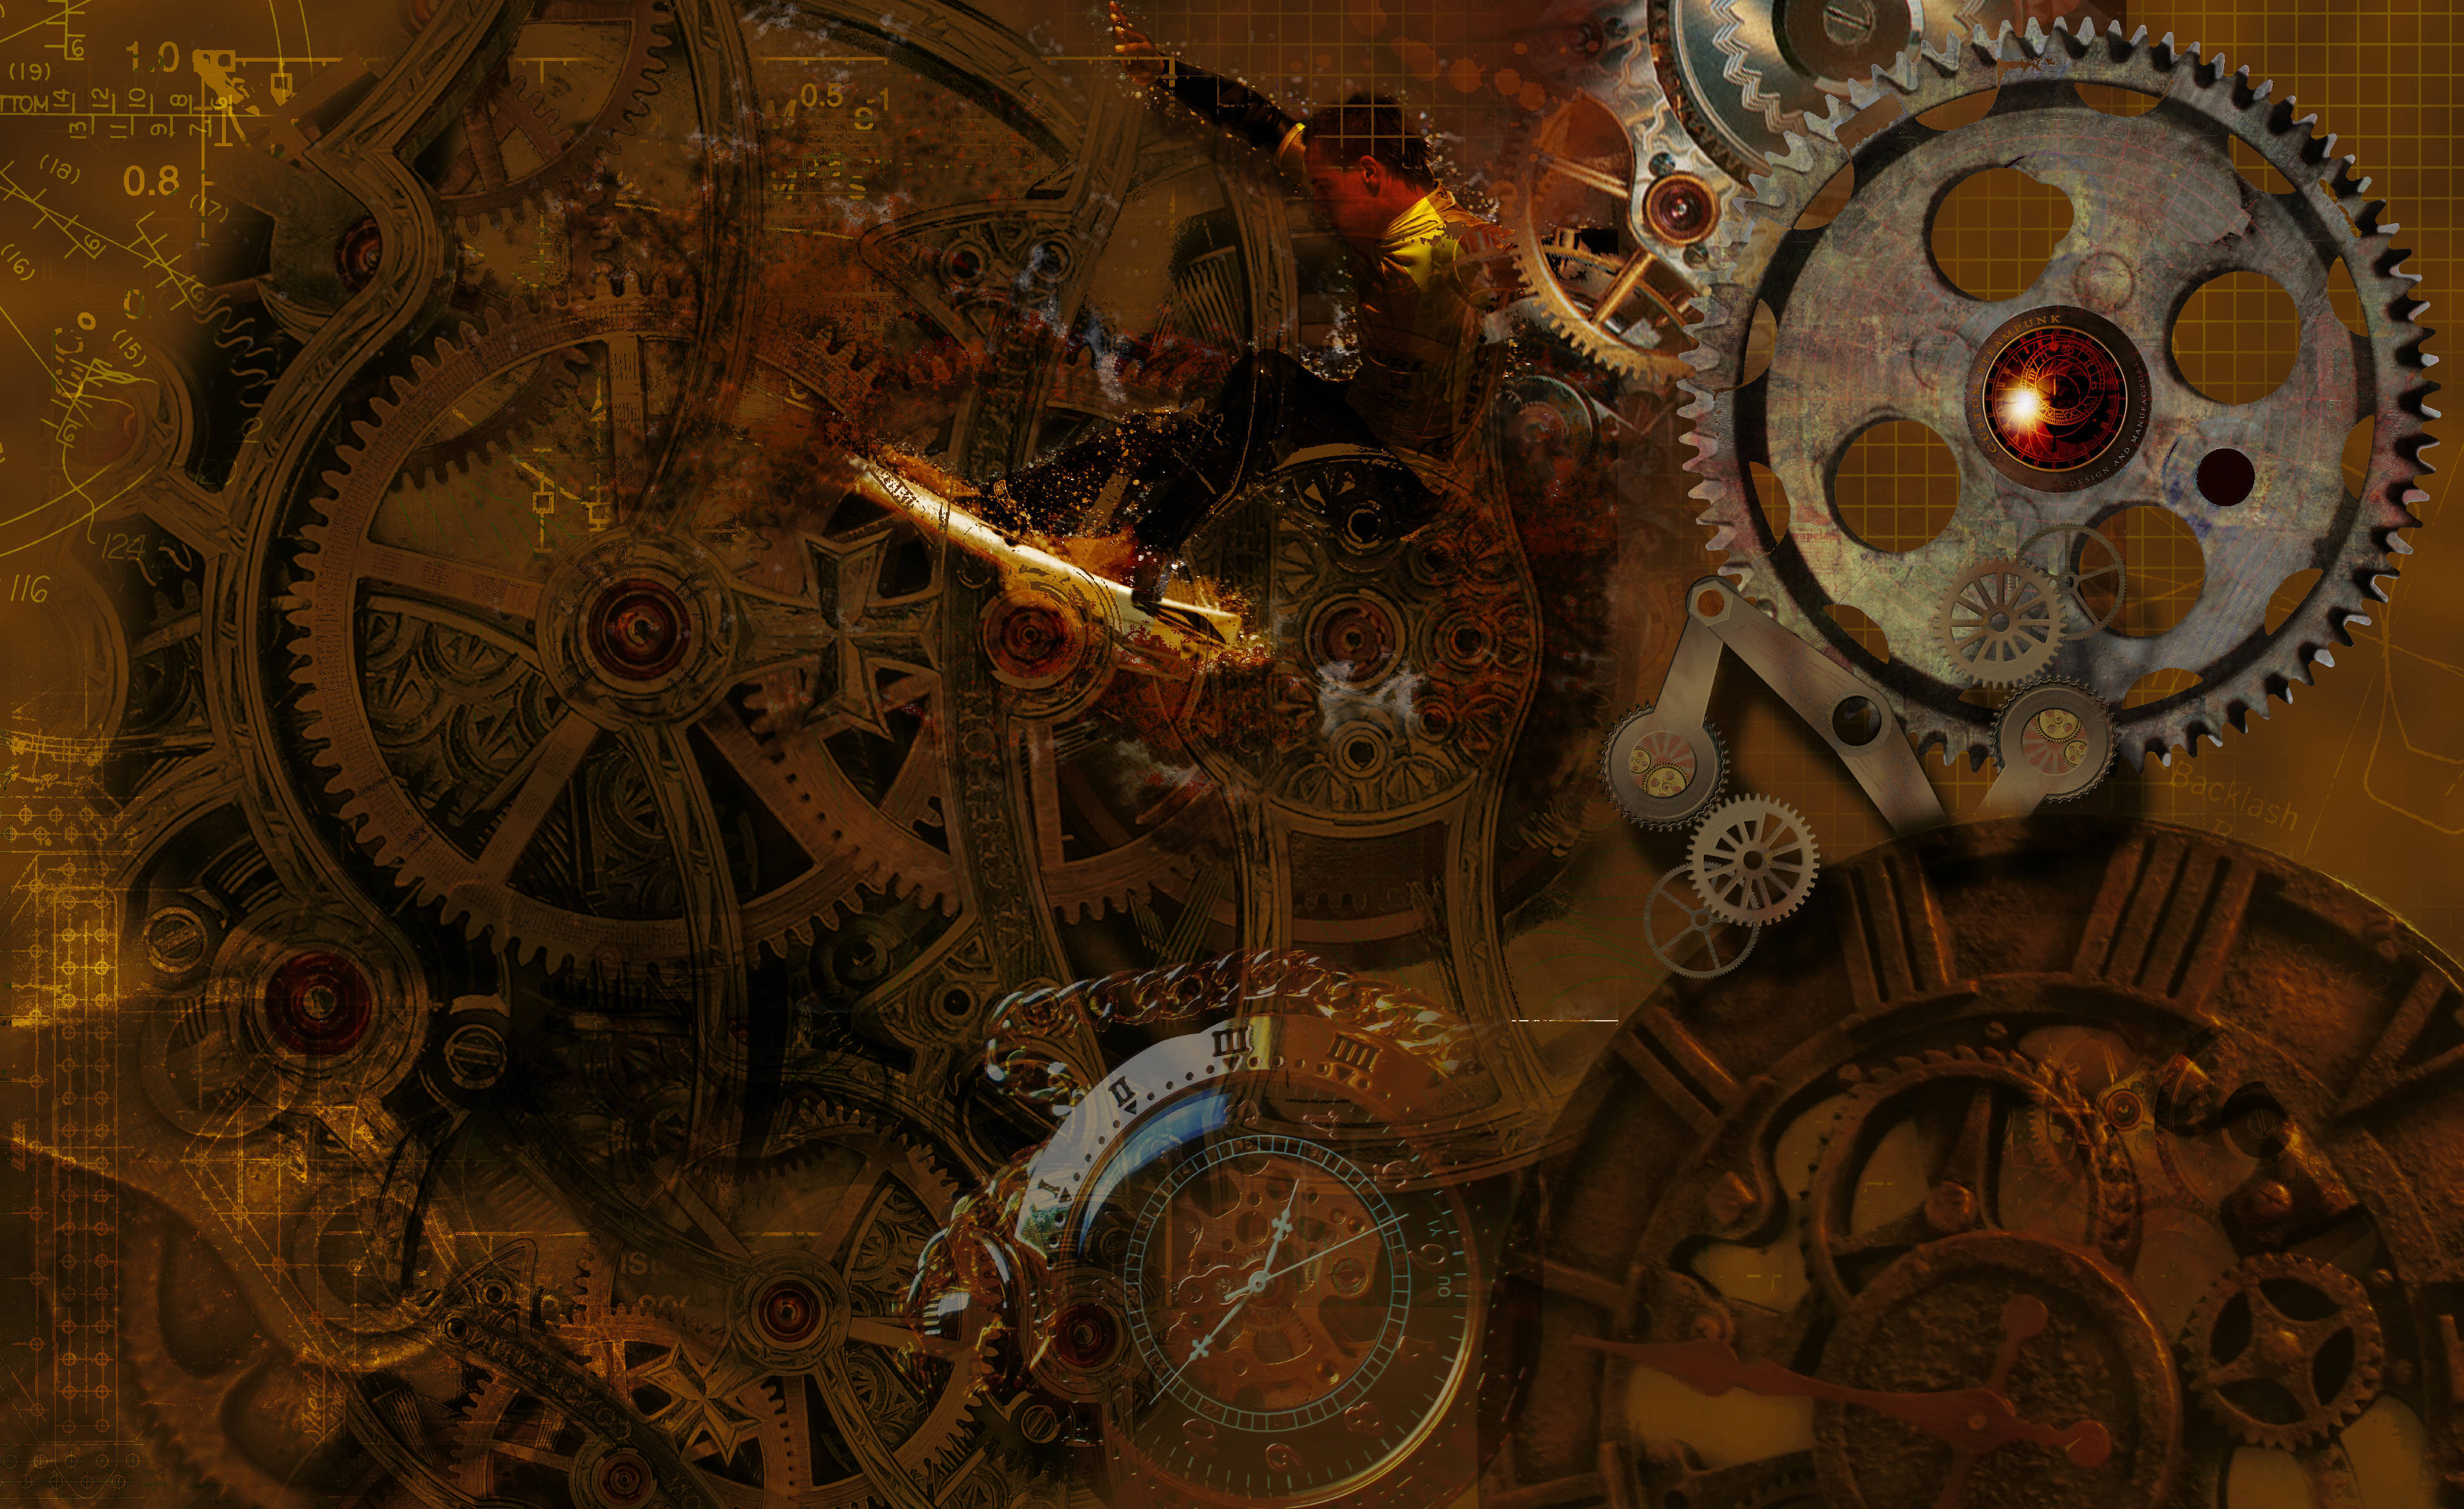 Steampunk world of technology wallpapers and images   wallpapers 3840x2352